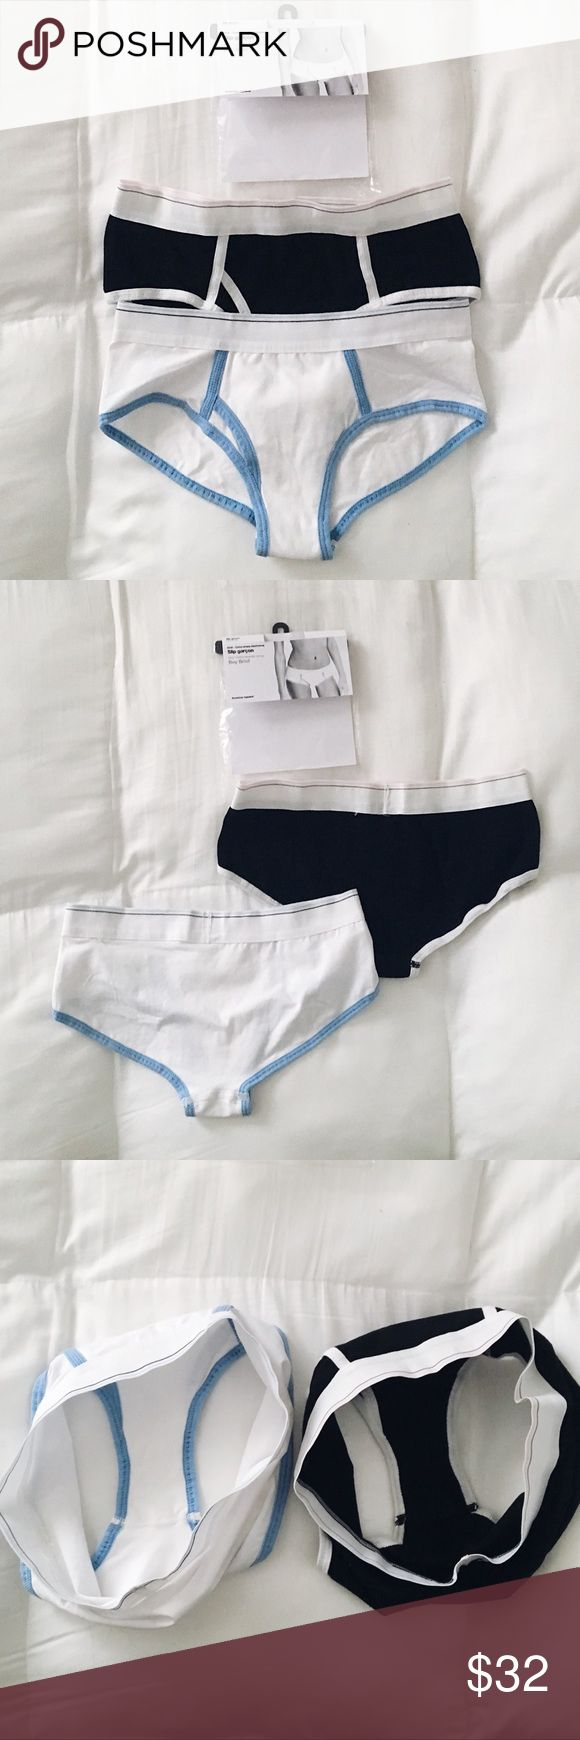 NWT American Apparel briefs NWT. Never worn just a lil wrinkly from storage. Size s, could also fit an xs. ✖️NO trades or holds 📬same/next day shipping 💙use offer button to negotiate price American Apparel Intimates & Sleepwear Panties